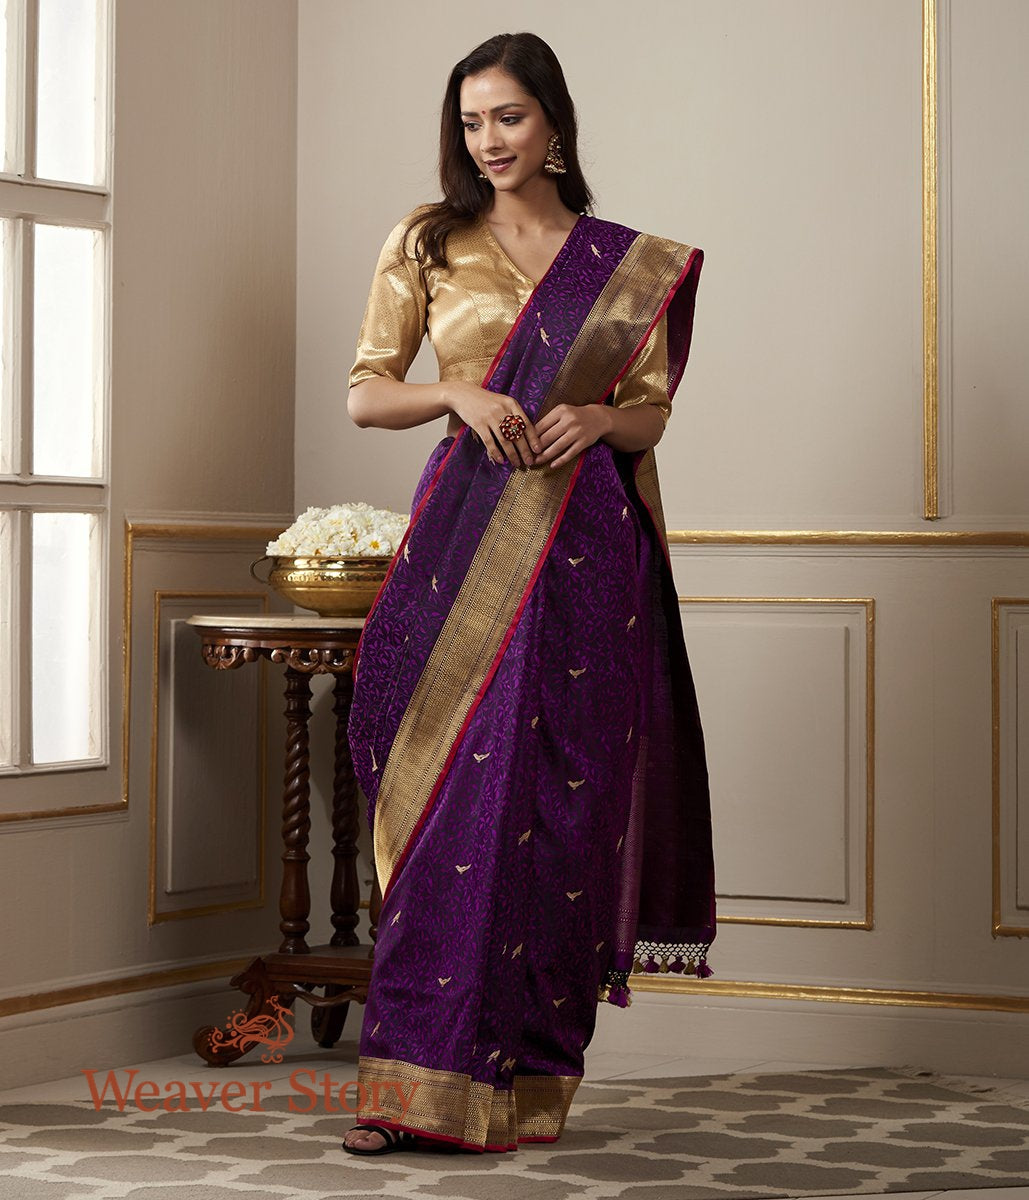 Handwoven Purple and Pink Tanchoi Saree with Woven Bird Motifs